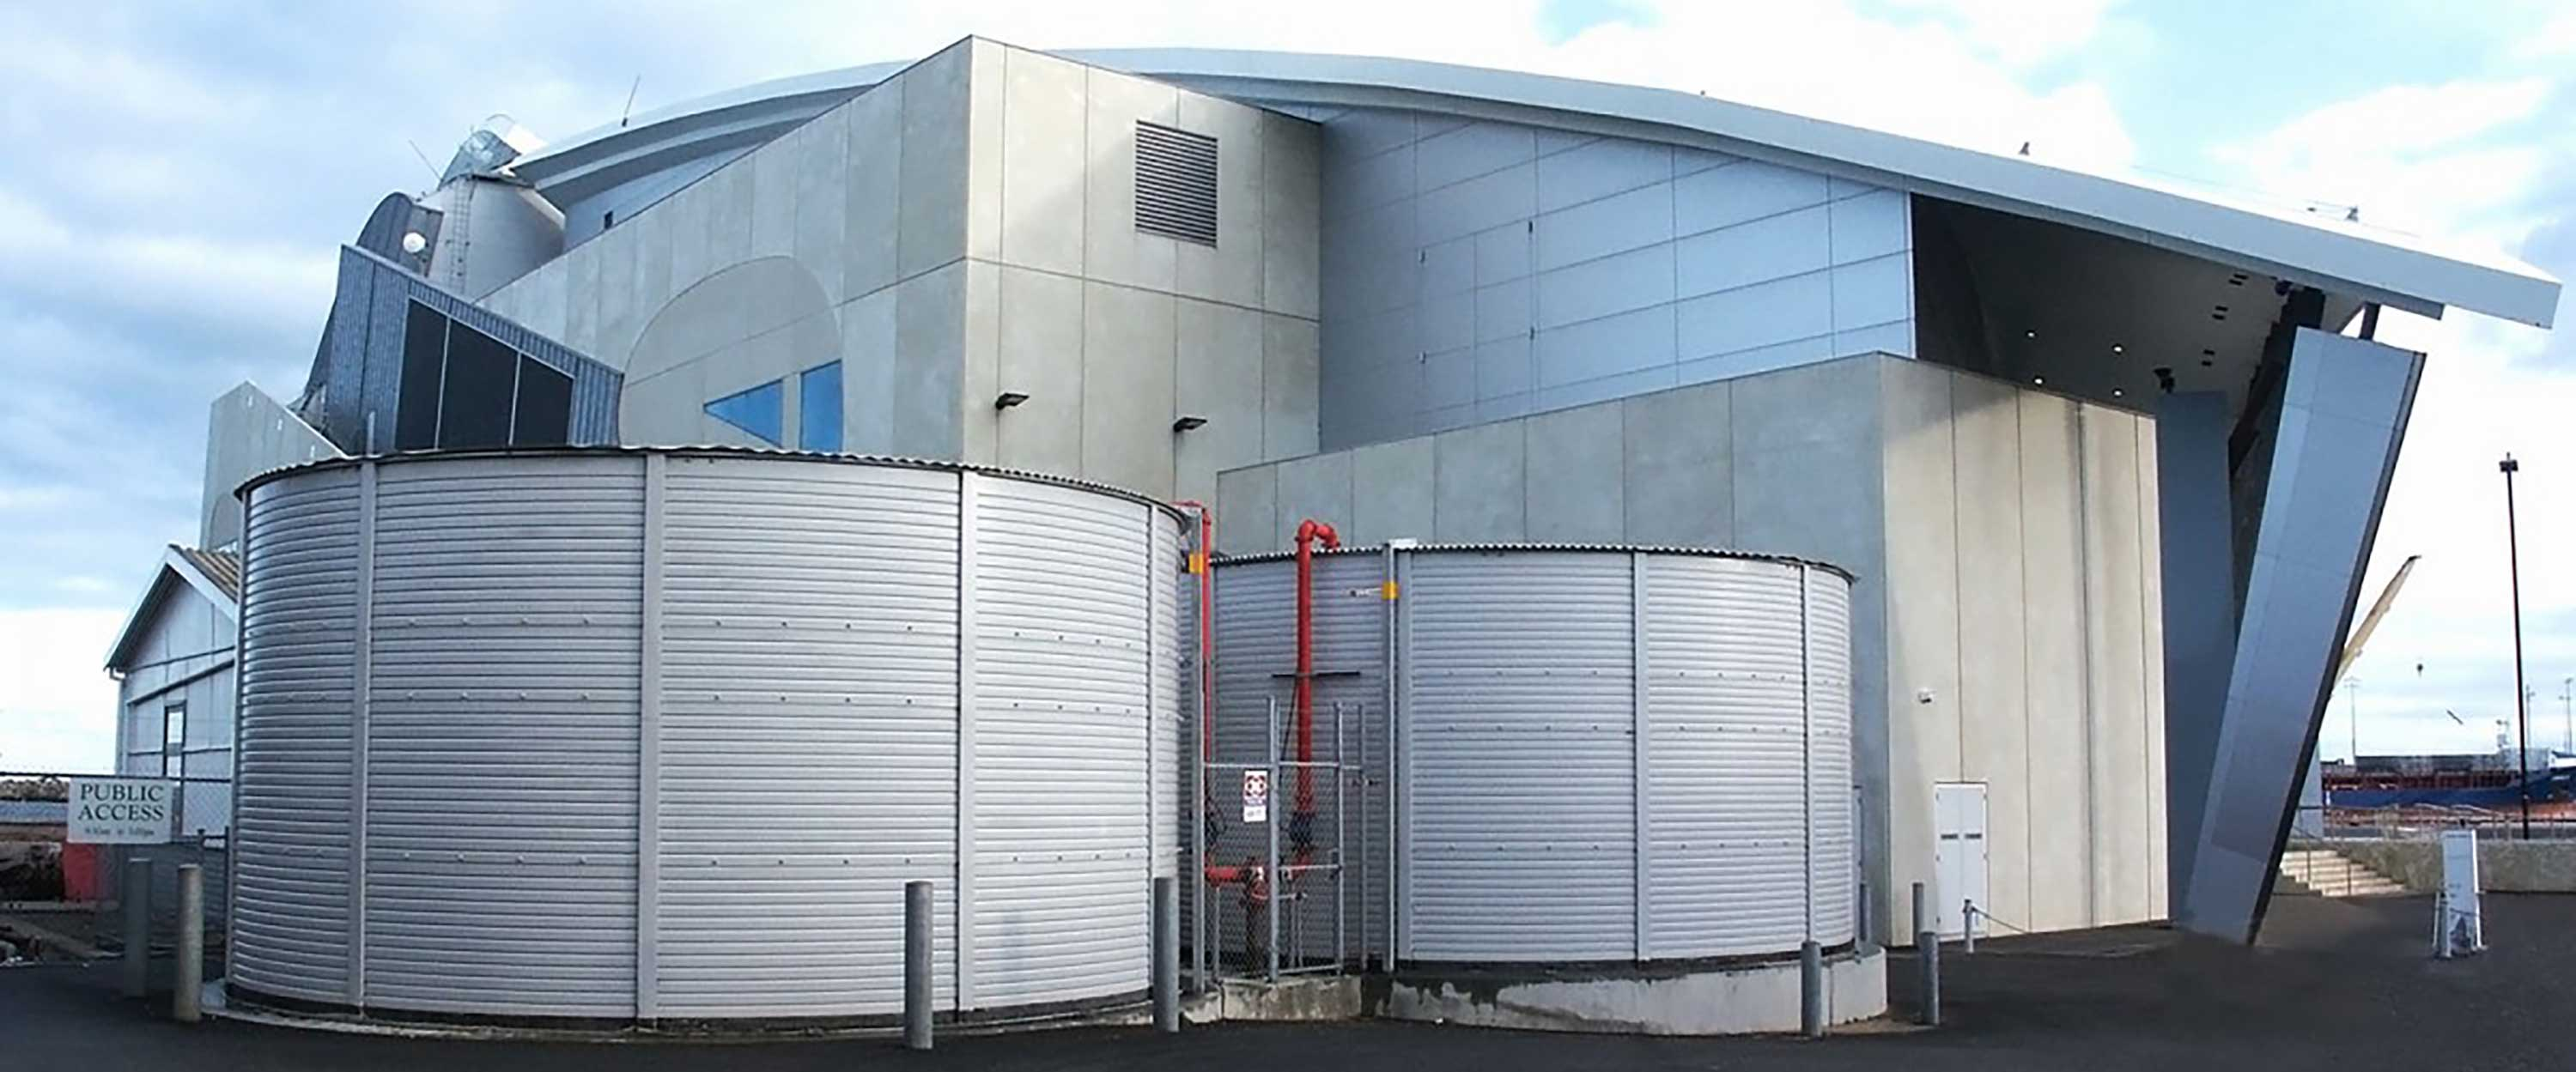 Fireprotectionheaderpage Acer Water Tanks